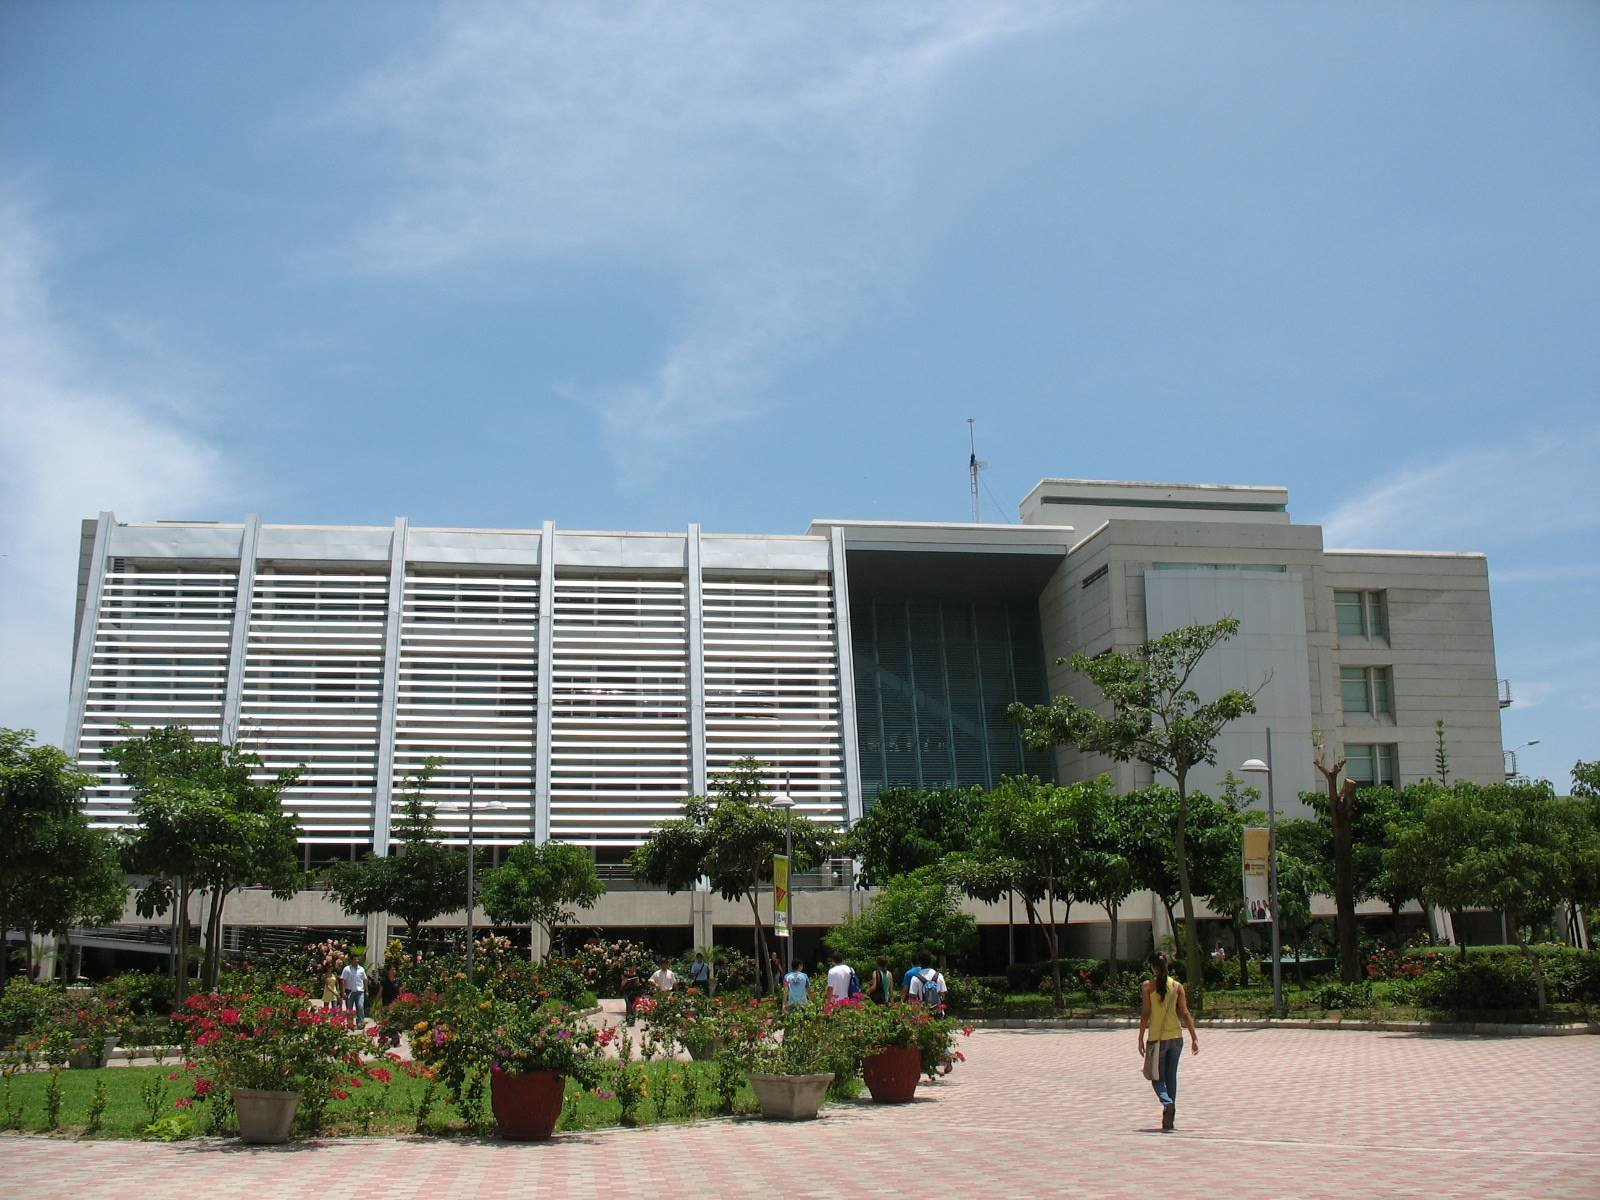 File:Barranquilla, Universidad del Norte-Postgrados.jpg - Wikipedia ...